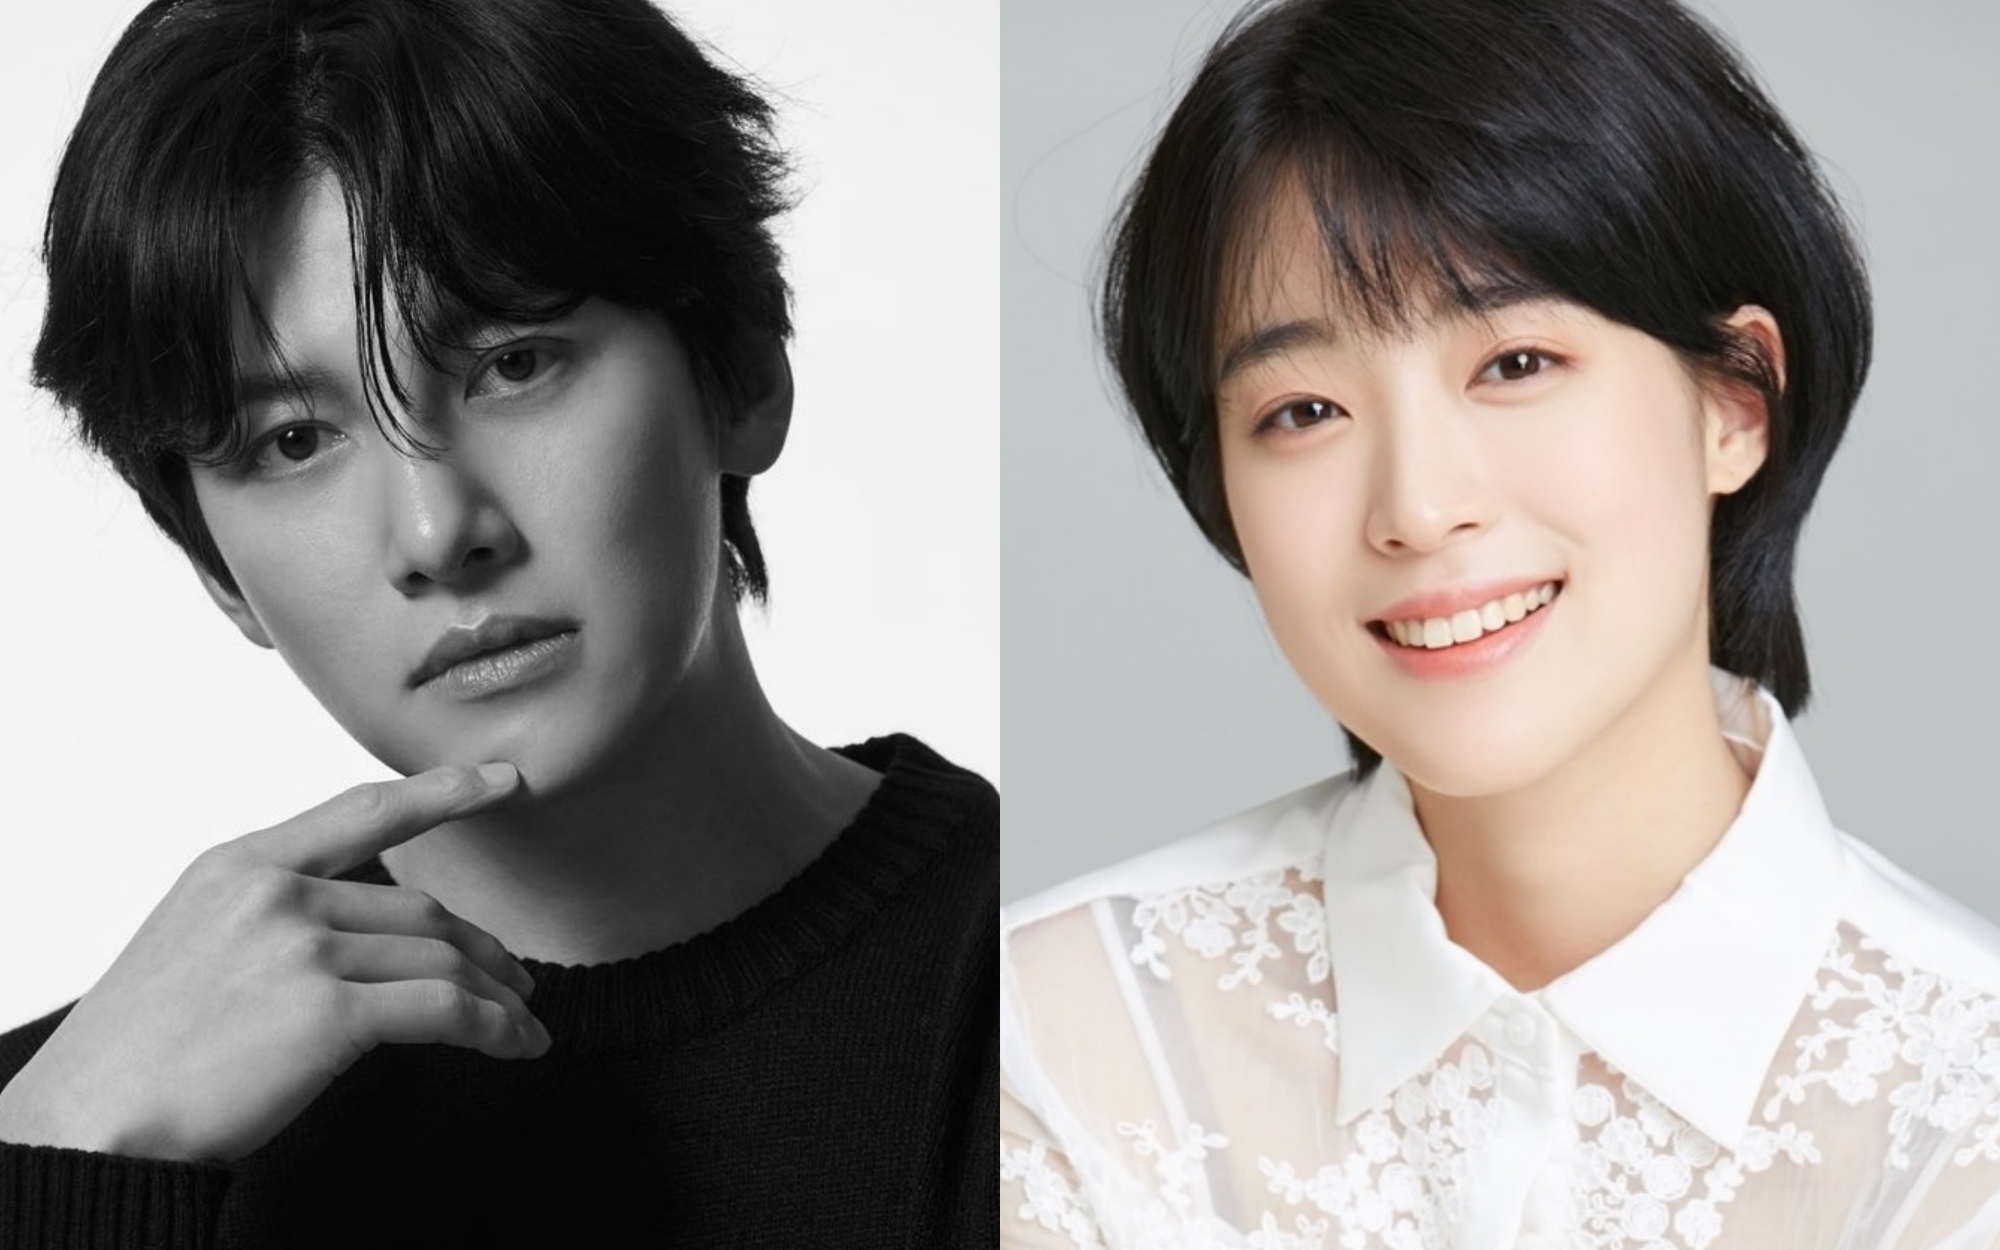 Photo: stylised from @jichangwook on Instagram and Choi Sung-eun on asianwiki.com